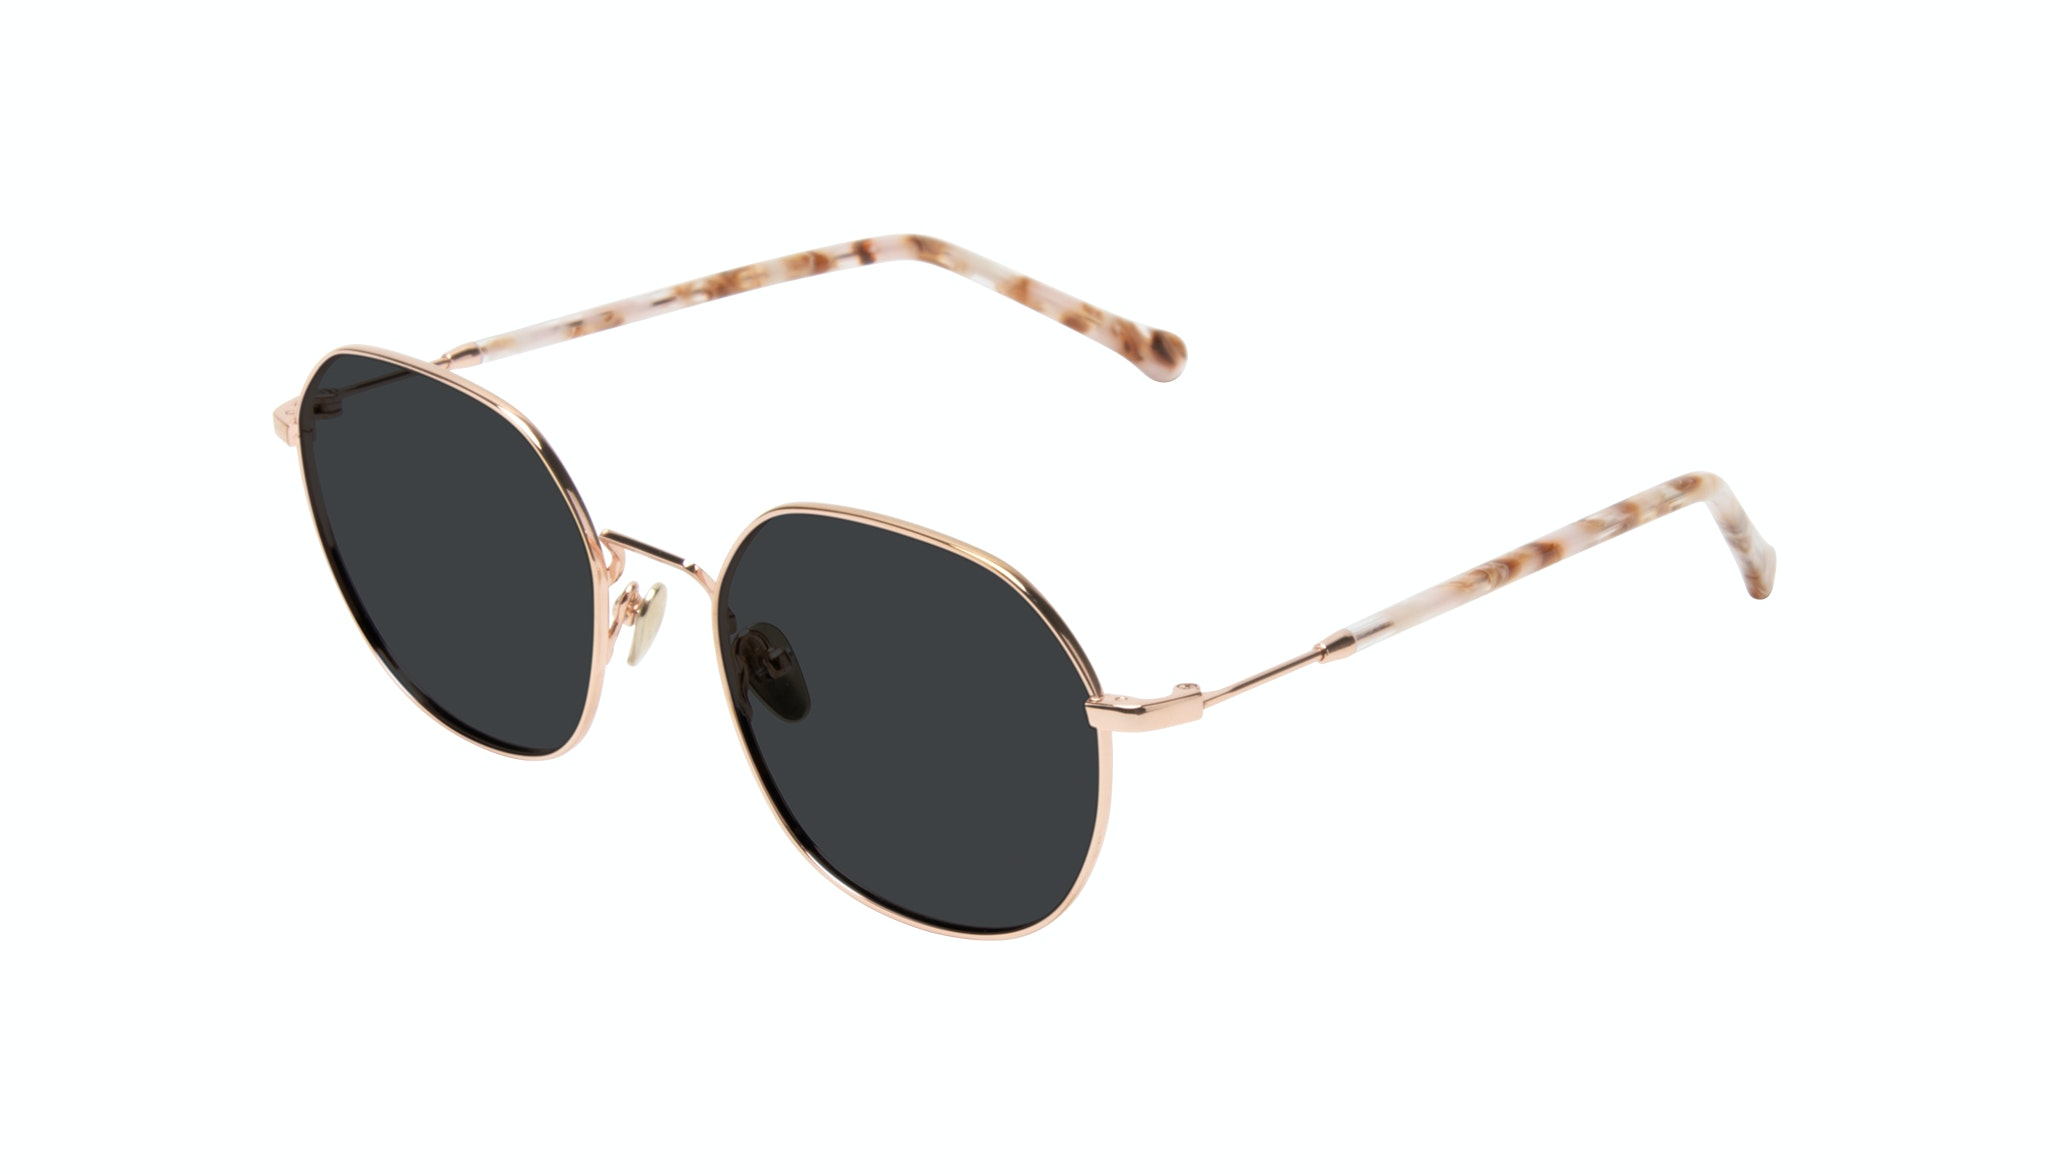 Affordable Fashion Glasses Round Sunglasses Women Coco Rose Gold Tilt